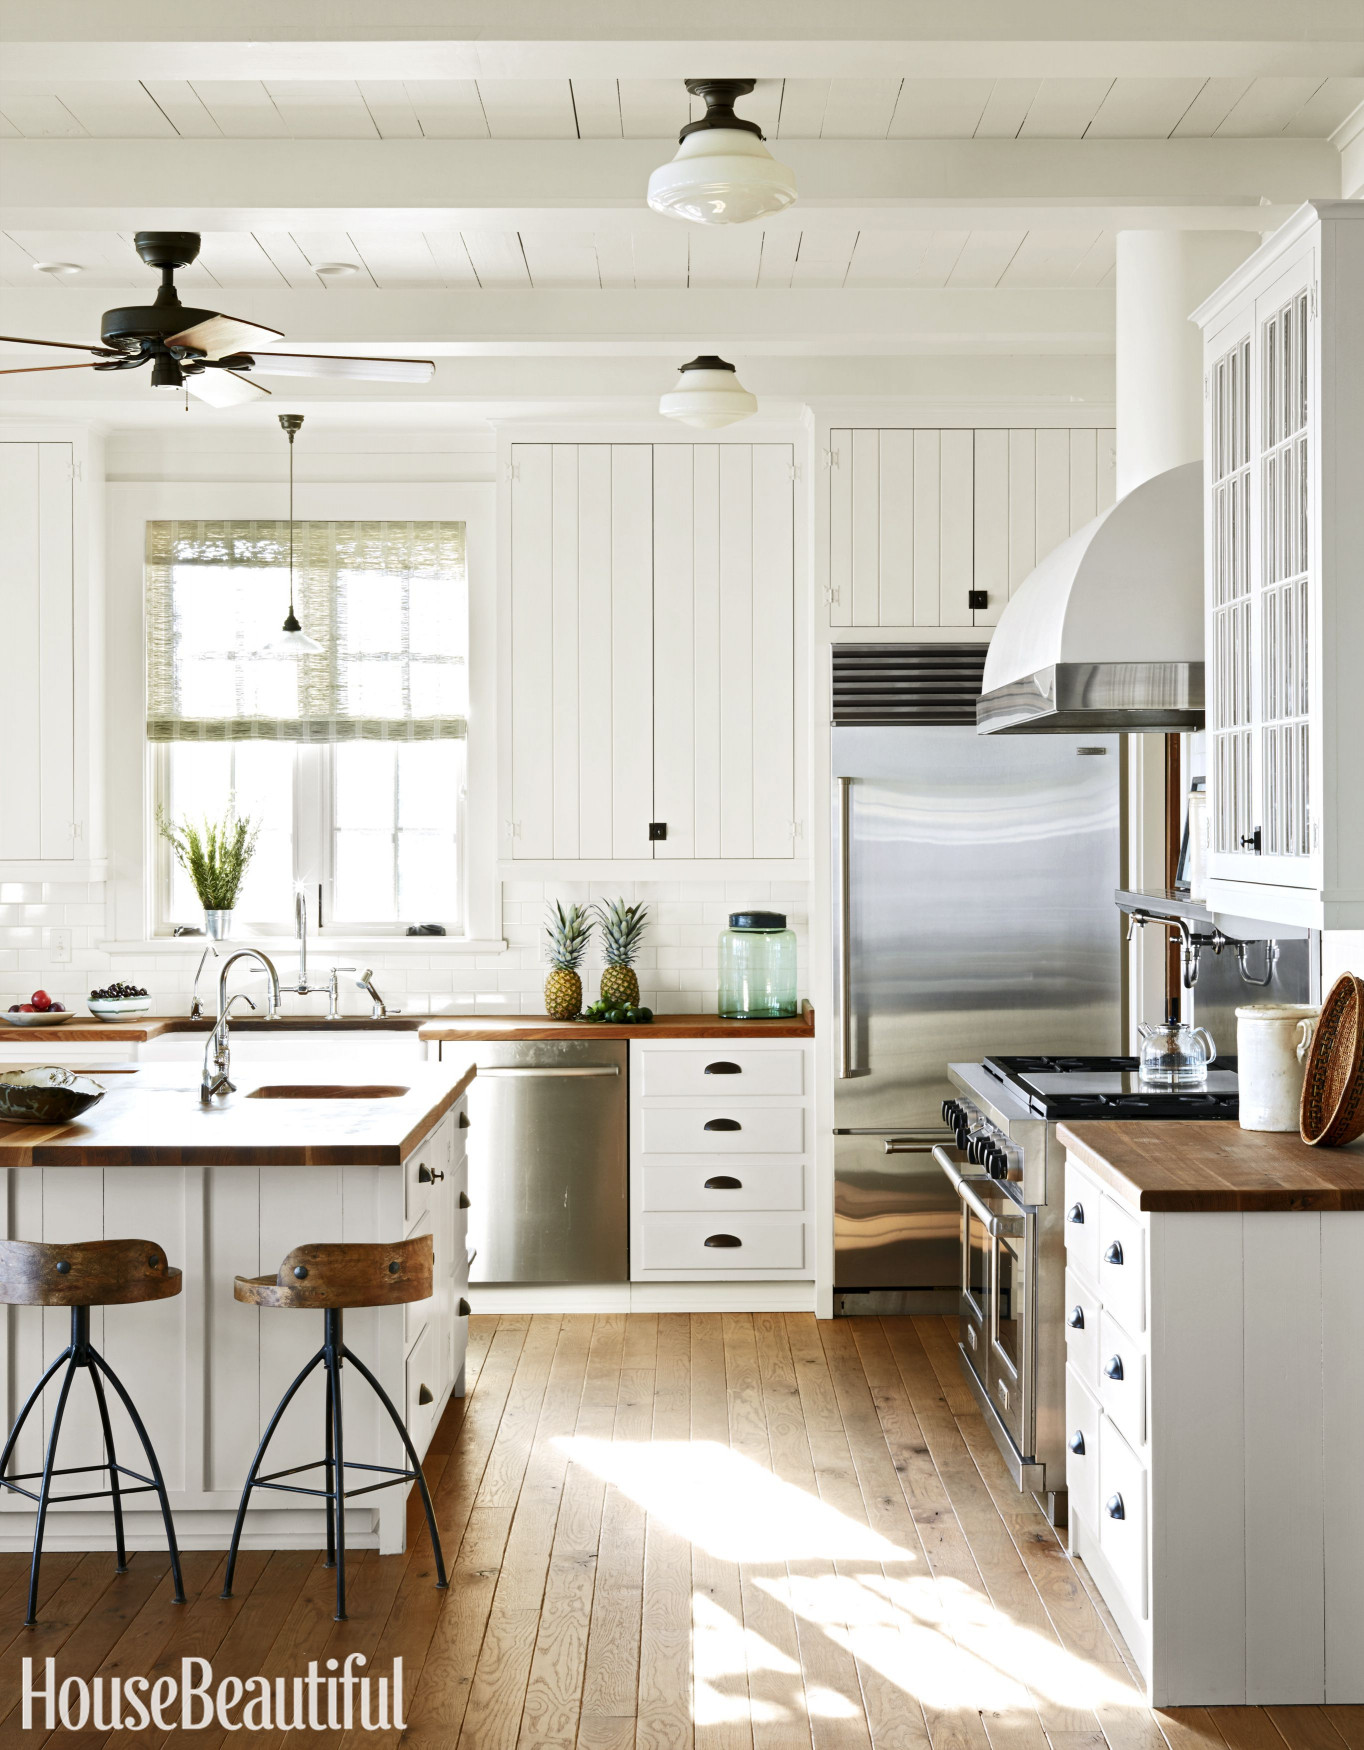 White Kitchen Cabinet Lovely 17 White Kitchen Cabinet Ideas Paint Colors and Hardware for